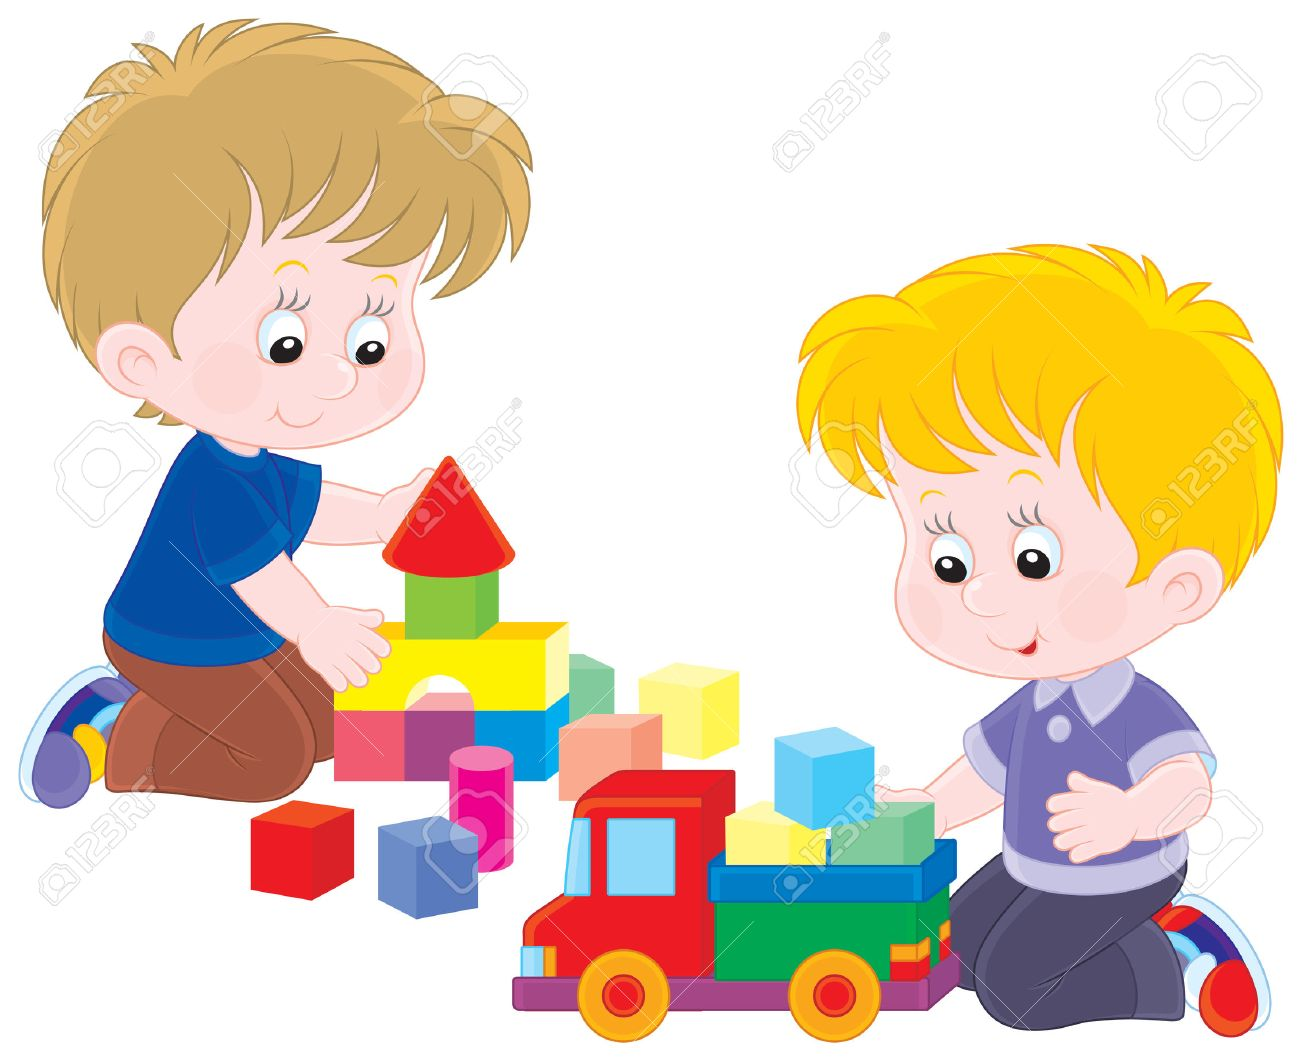 image royalty free library Children station . Kids playing with toys clipart.